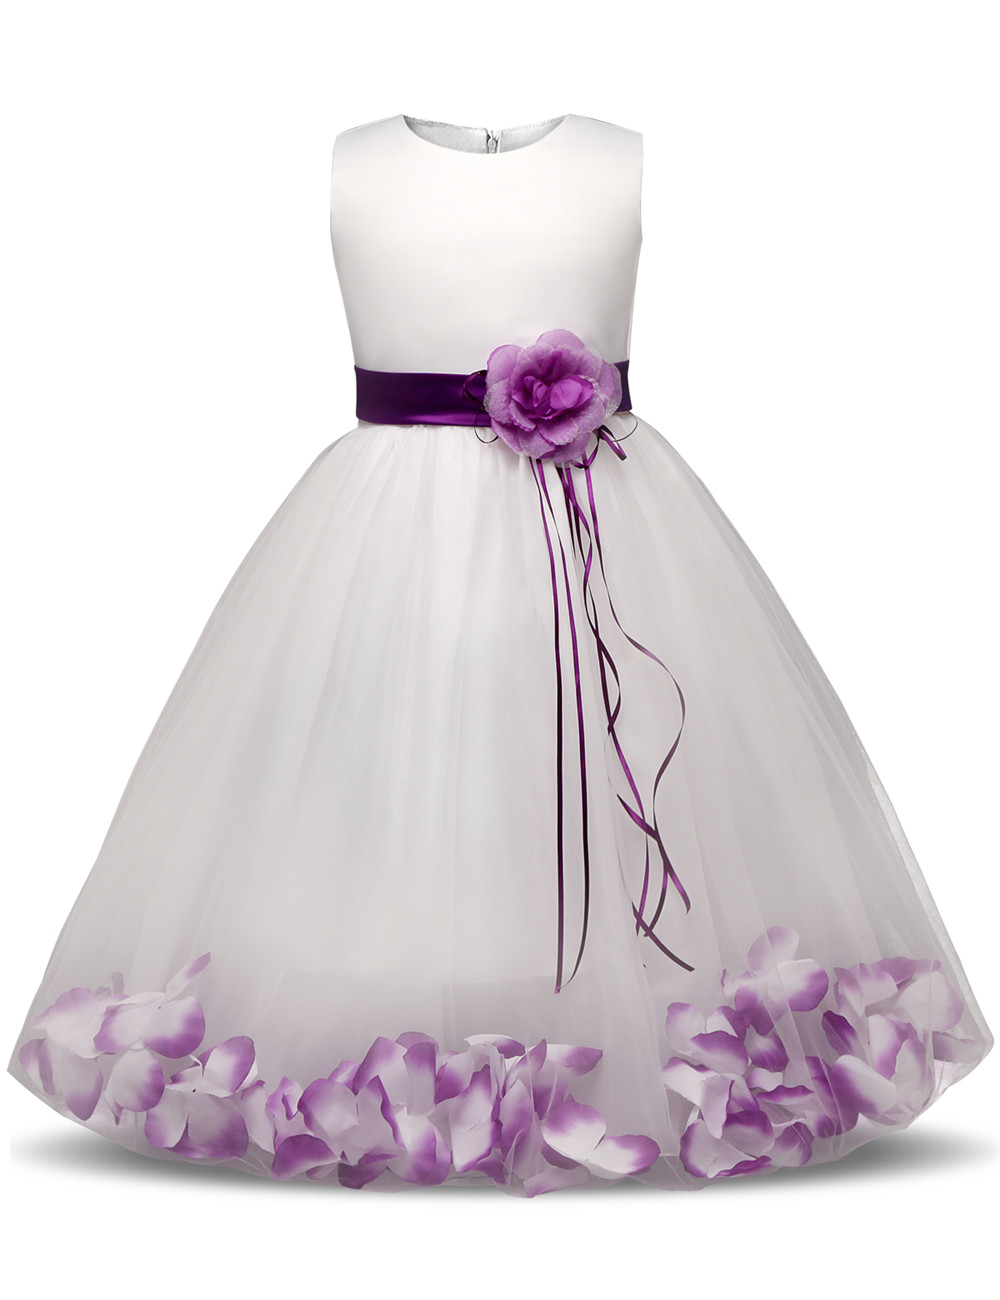 Flower Girl Dress Summer Clothes Girl 2018 Baby Girl Wedding Veil Dresses Kids's Party Wear Costume For Girl Children Clothing карандаш для бровей superlast 24h eye brow pomade pencil waterproof essence глаза